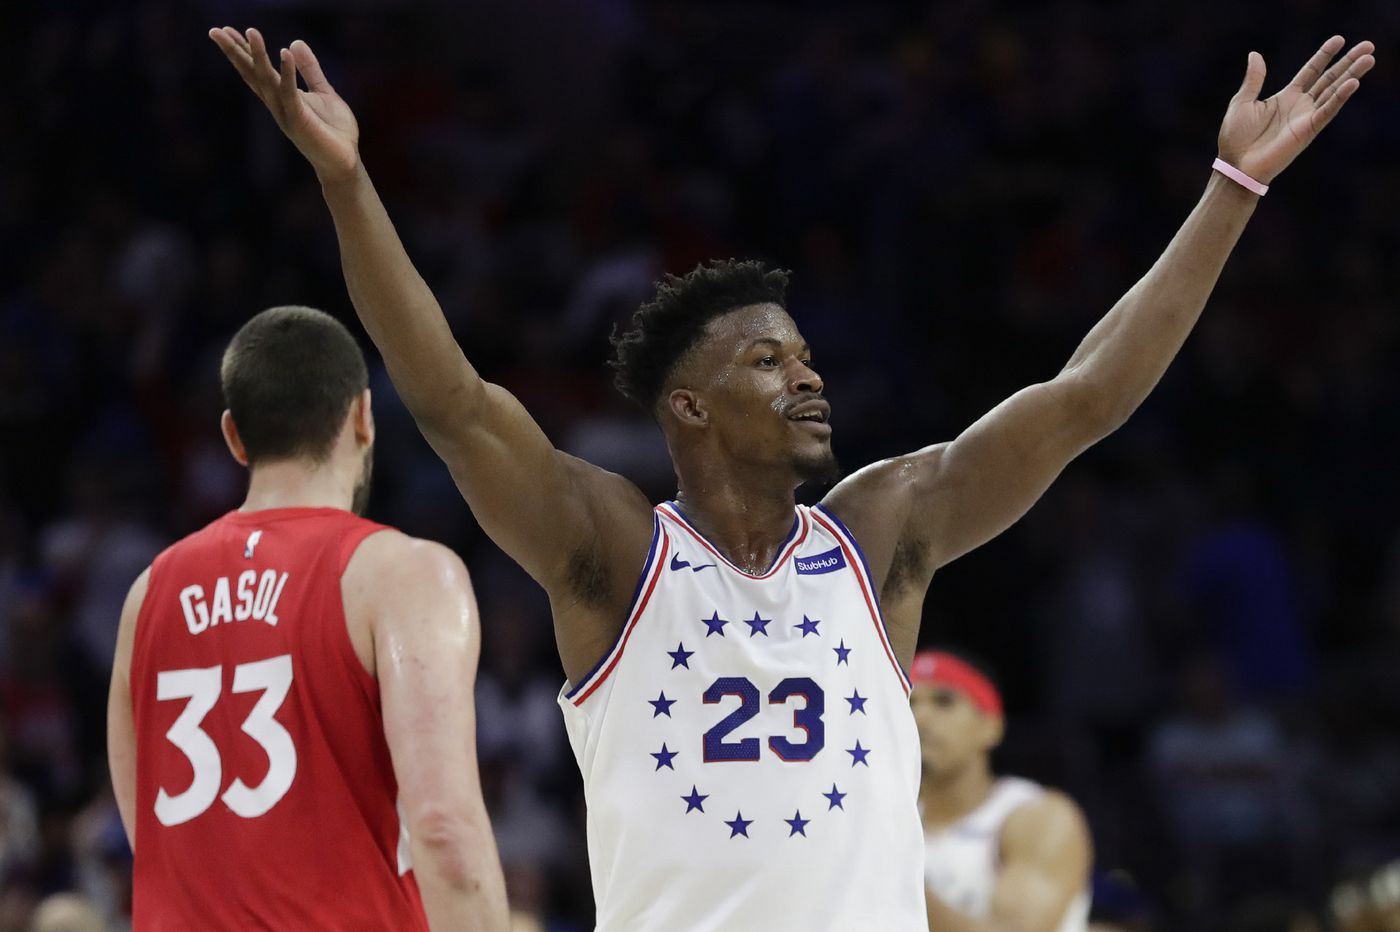 The best argument for paying Jimmy Butler? The Sixers probably can't afford to replace him. | David Murphy